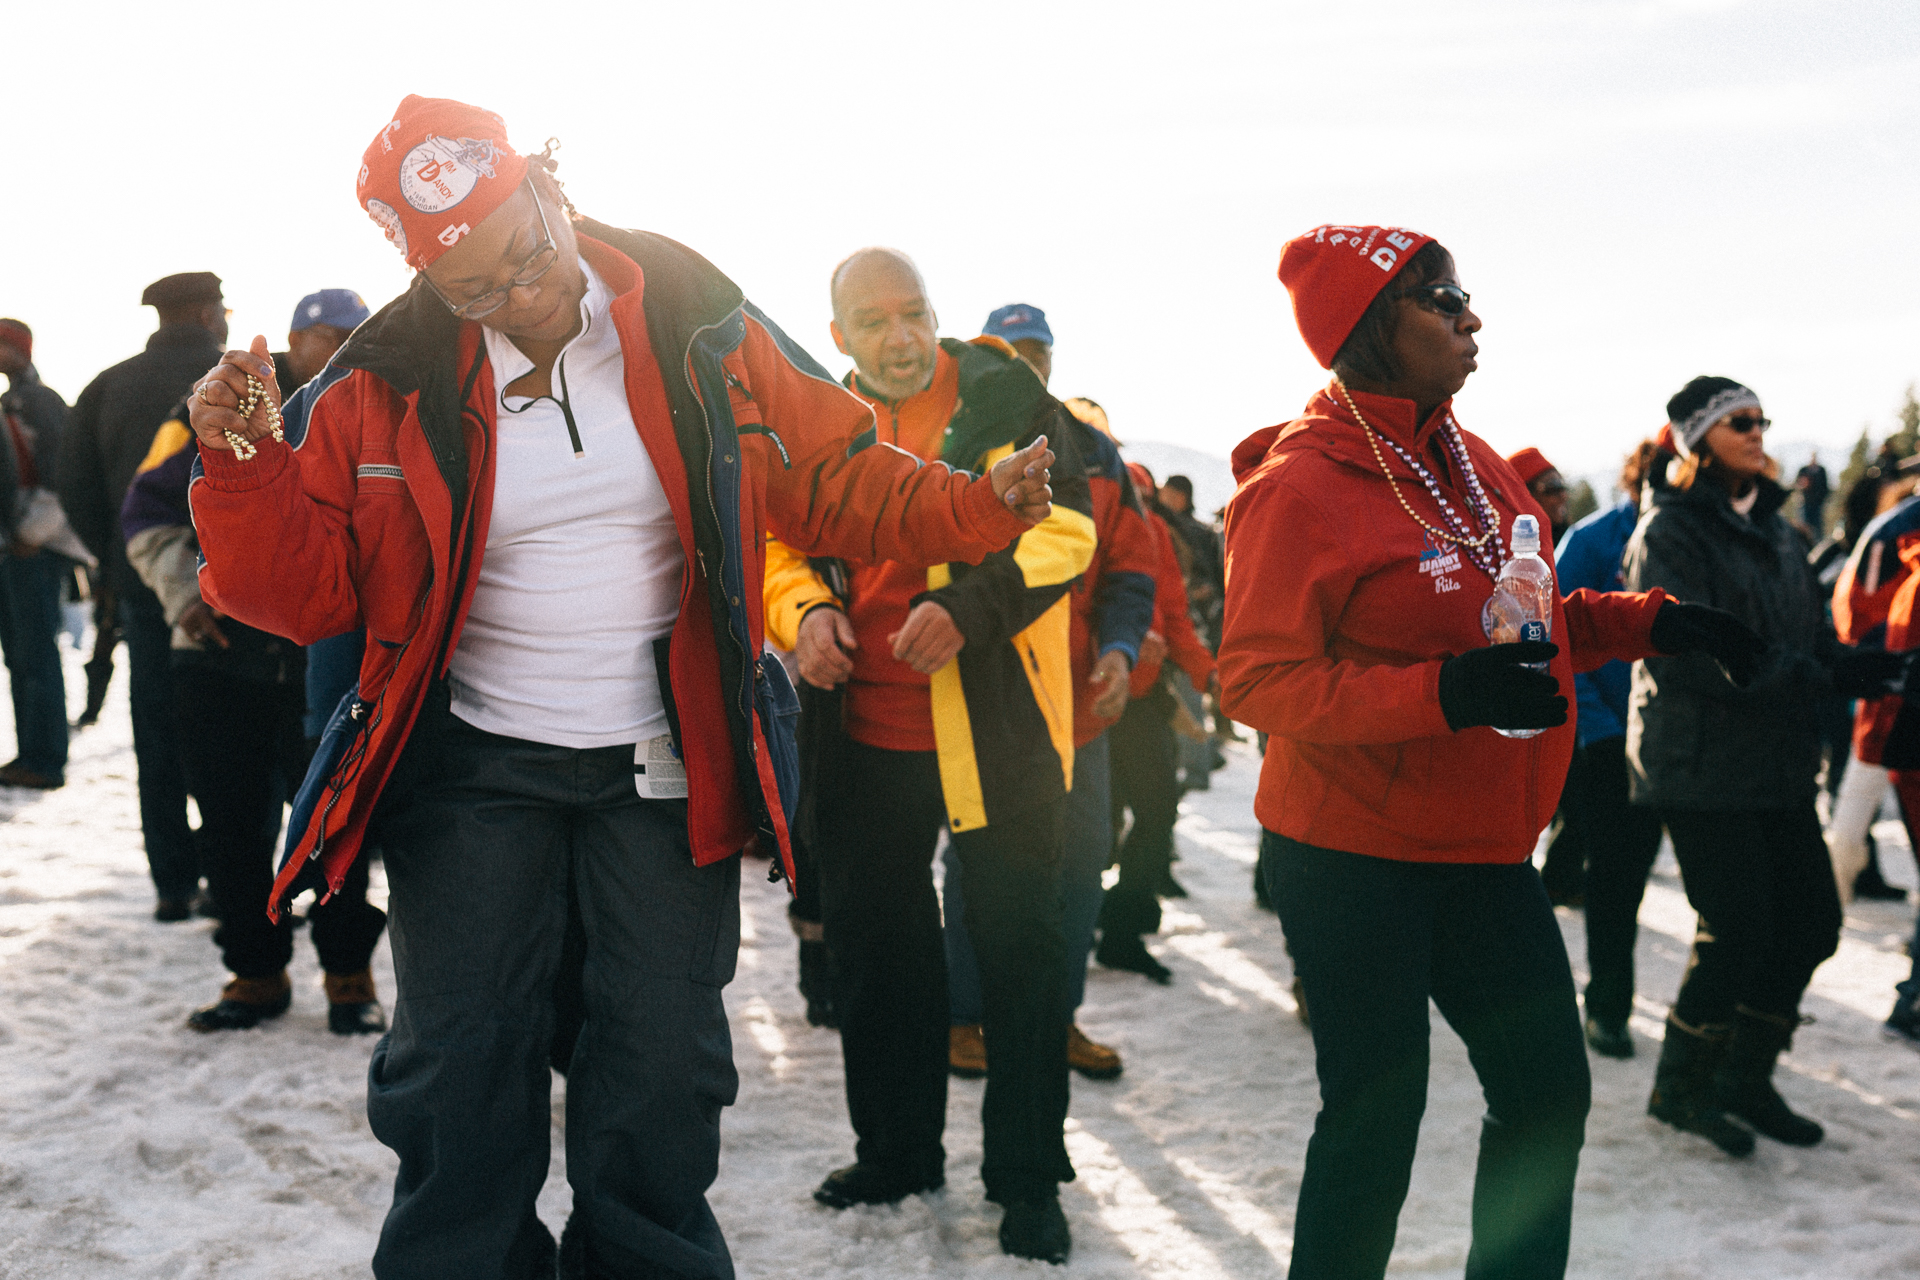 The National Brotherhood of Skiers has annually hosted the largest assembly of black skiers in the country. And it's been a damn good time.